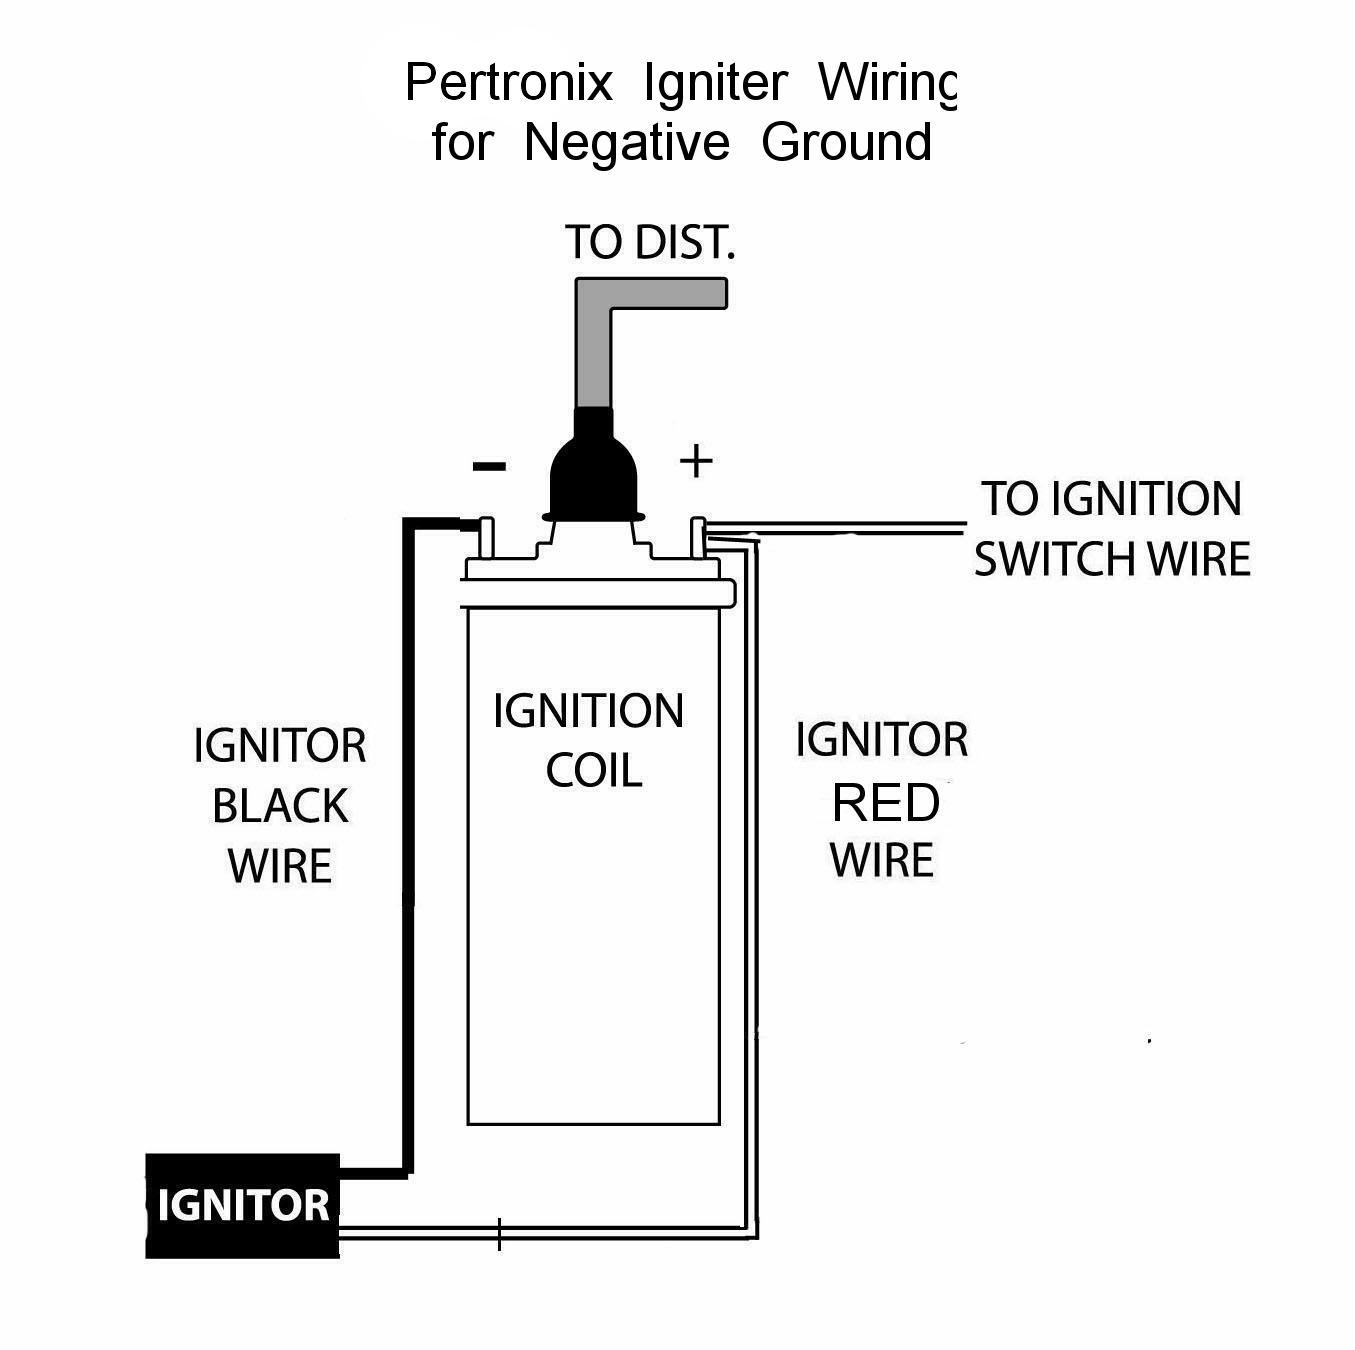 mallory pertronix wiring electrical ratsun forums pertronix ignitor wiring  diagram pertronix ignitor wiring diagram